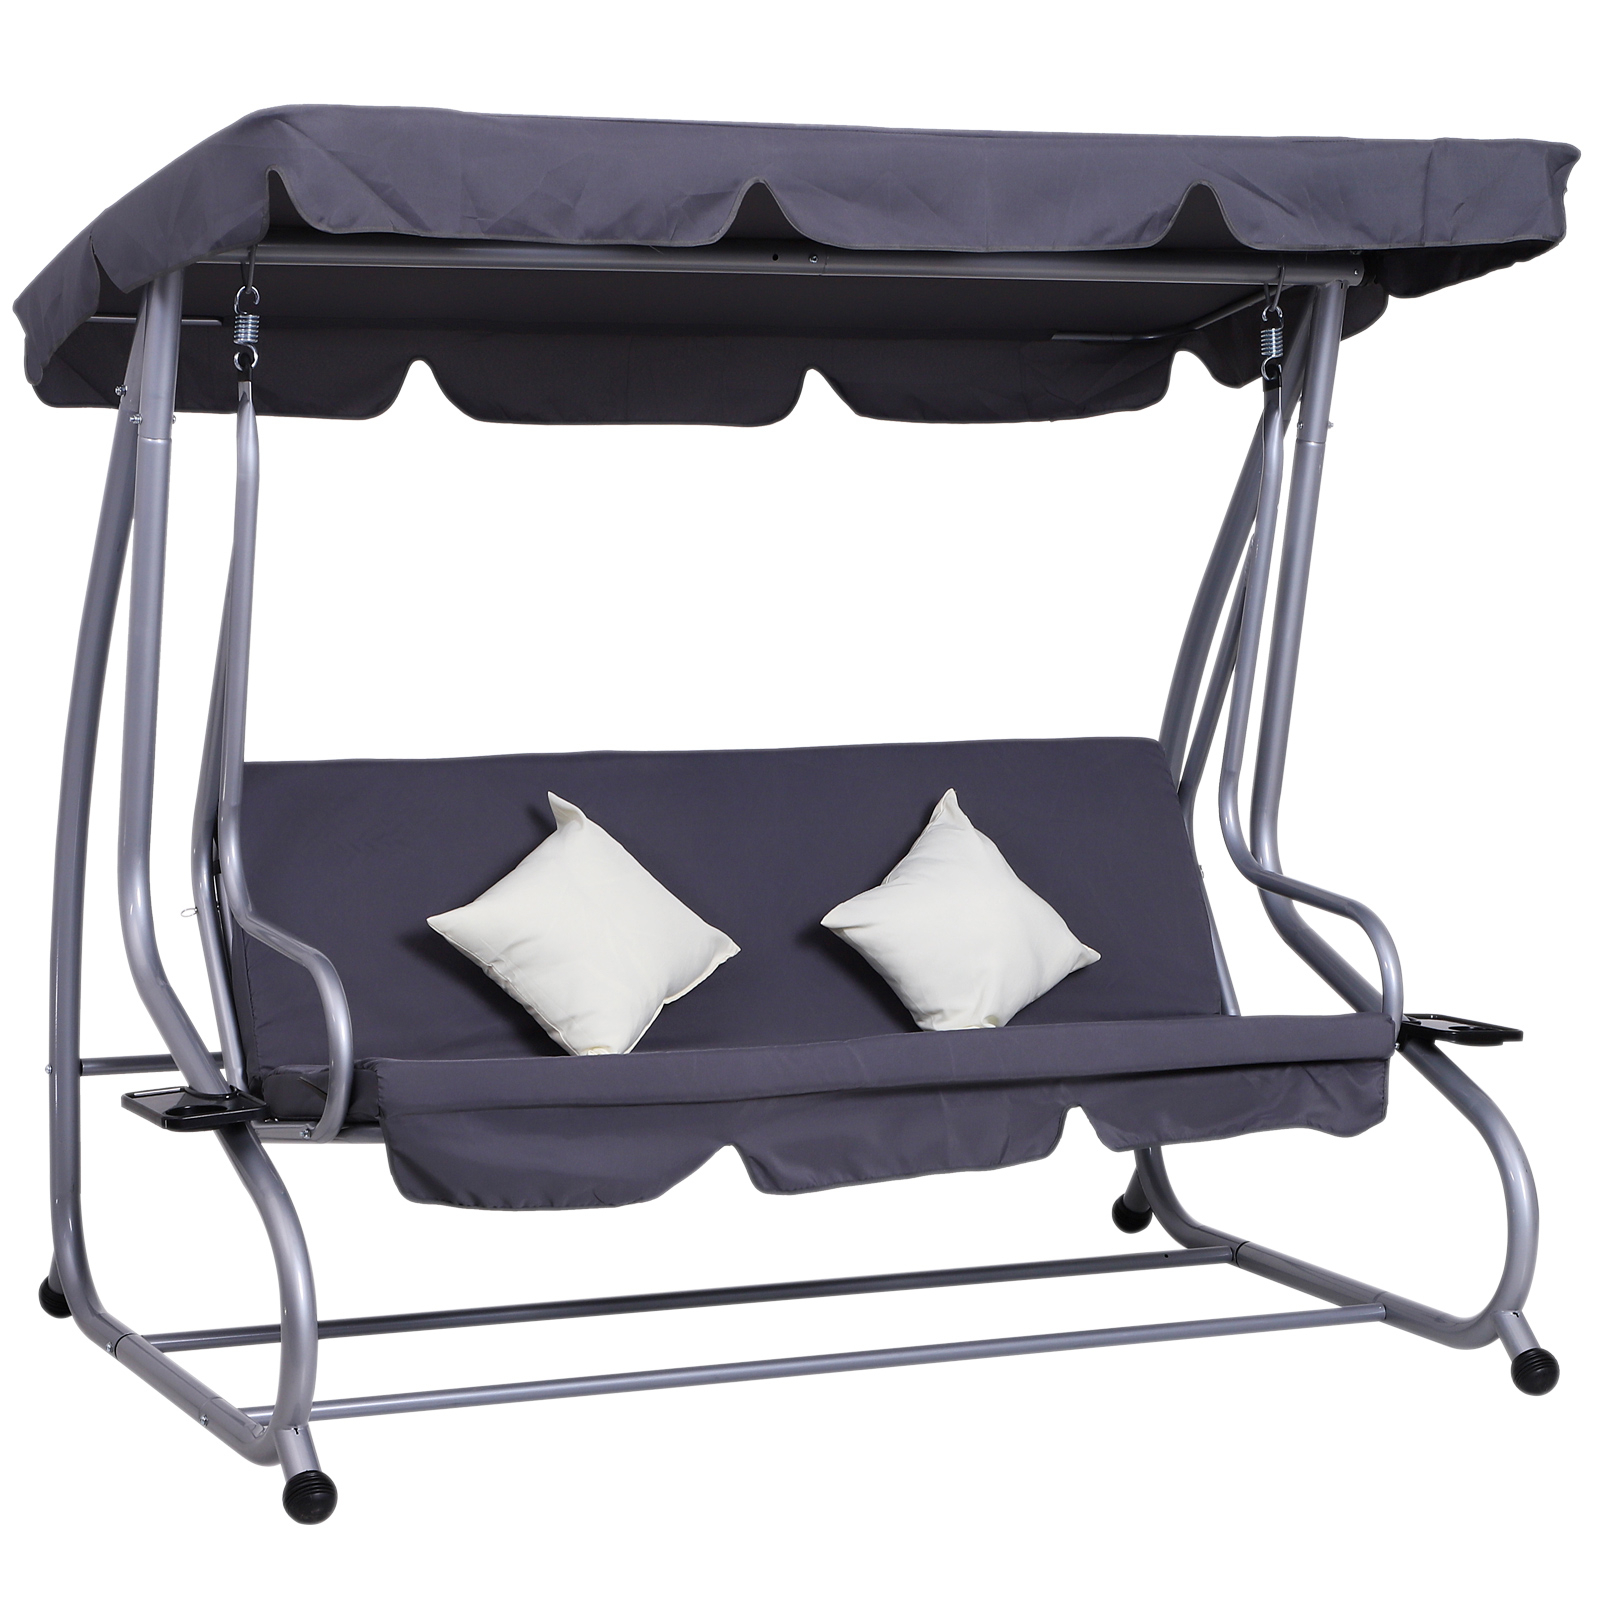 Outsunny Heavy Duty Metal 3 Seater Covered Outdoor Swing Chair Garden  Hammock And Bed With Frame, Canopy And 2 Pillows (Grey) With Regard To 3 Seater Swings With Frame And Canopy (Image 20 of 25)